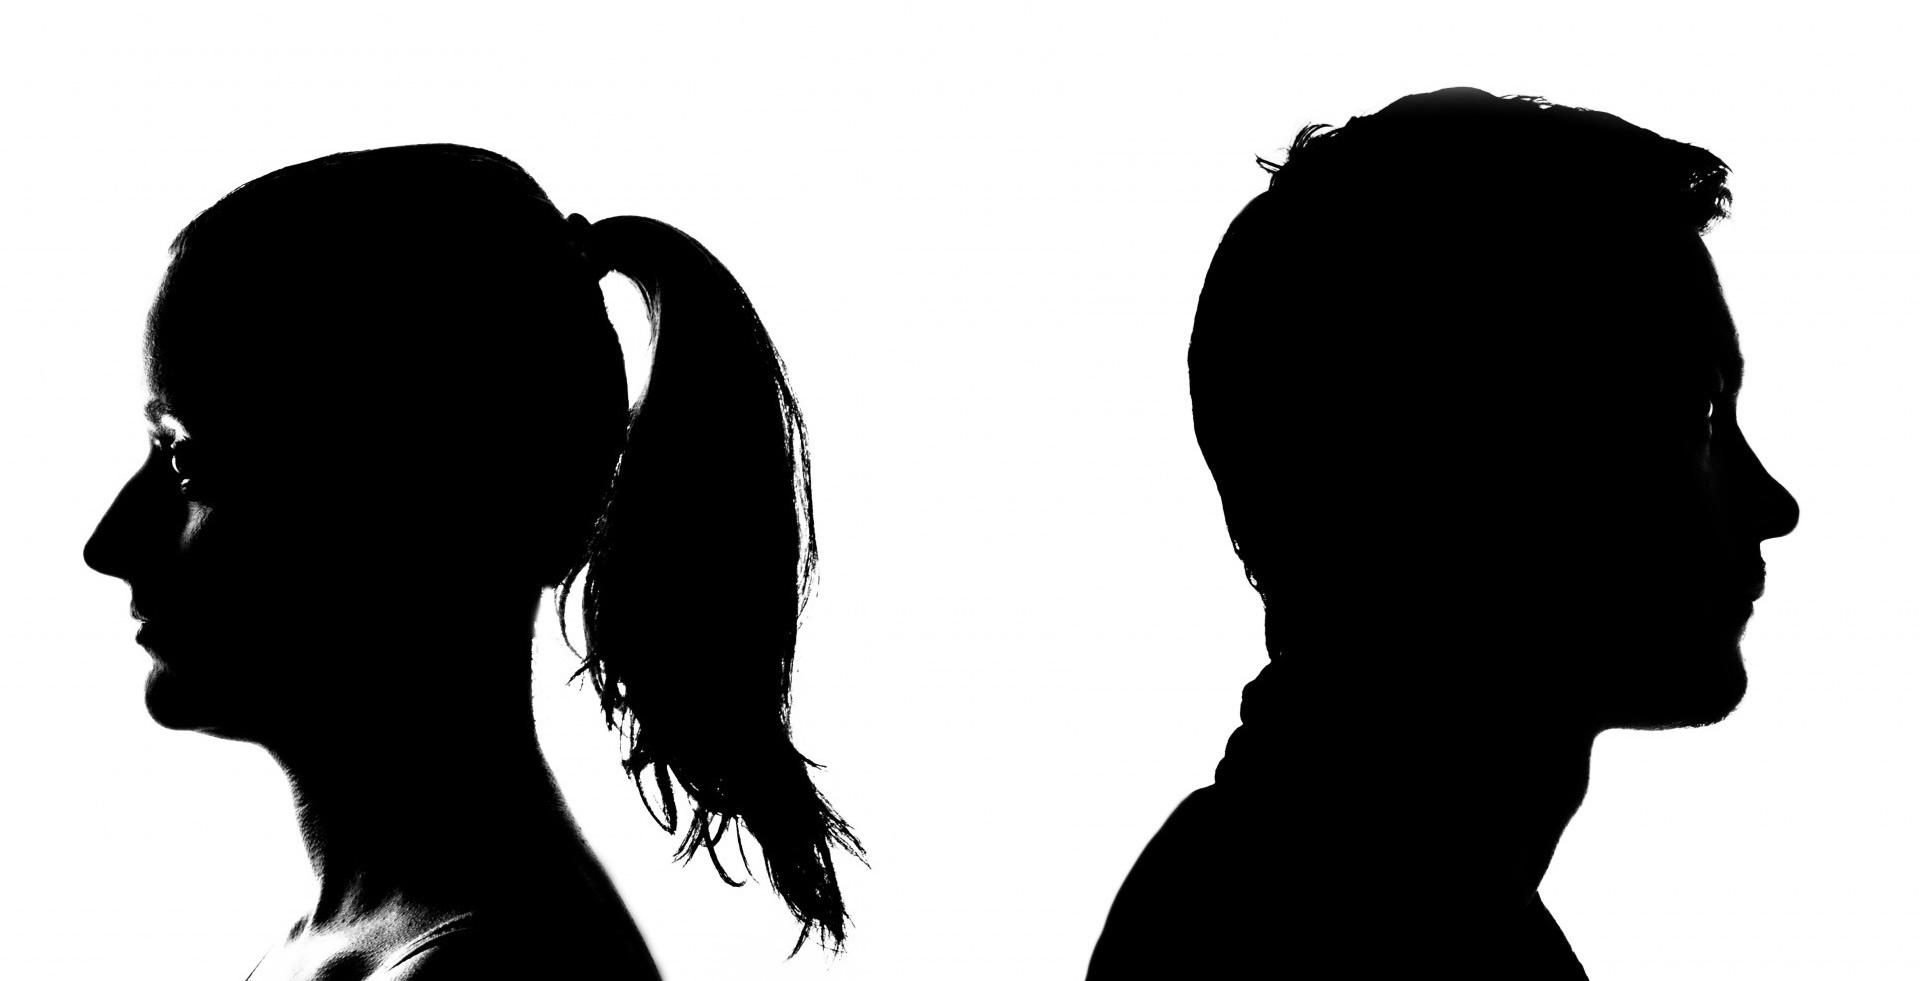 Do you feel your relationship has become stale?